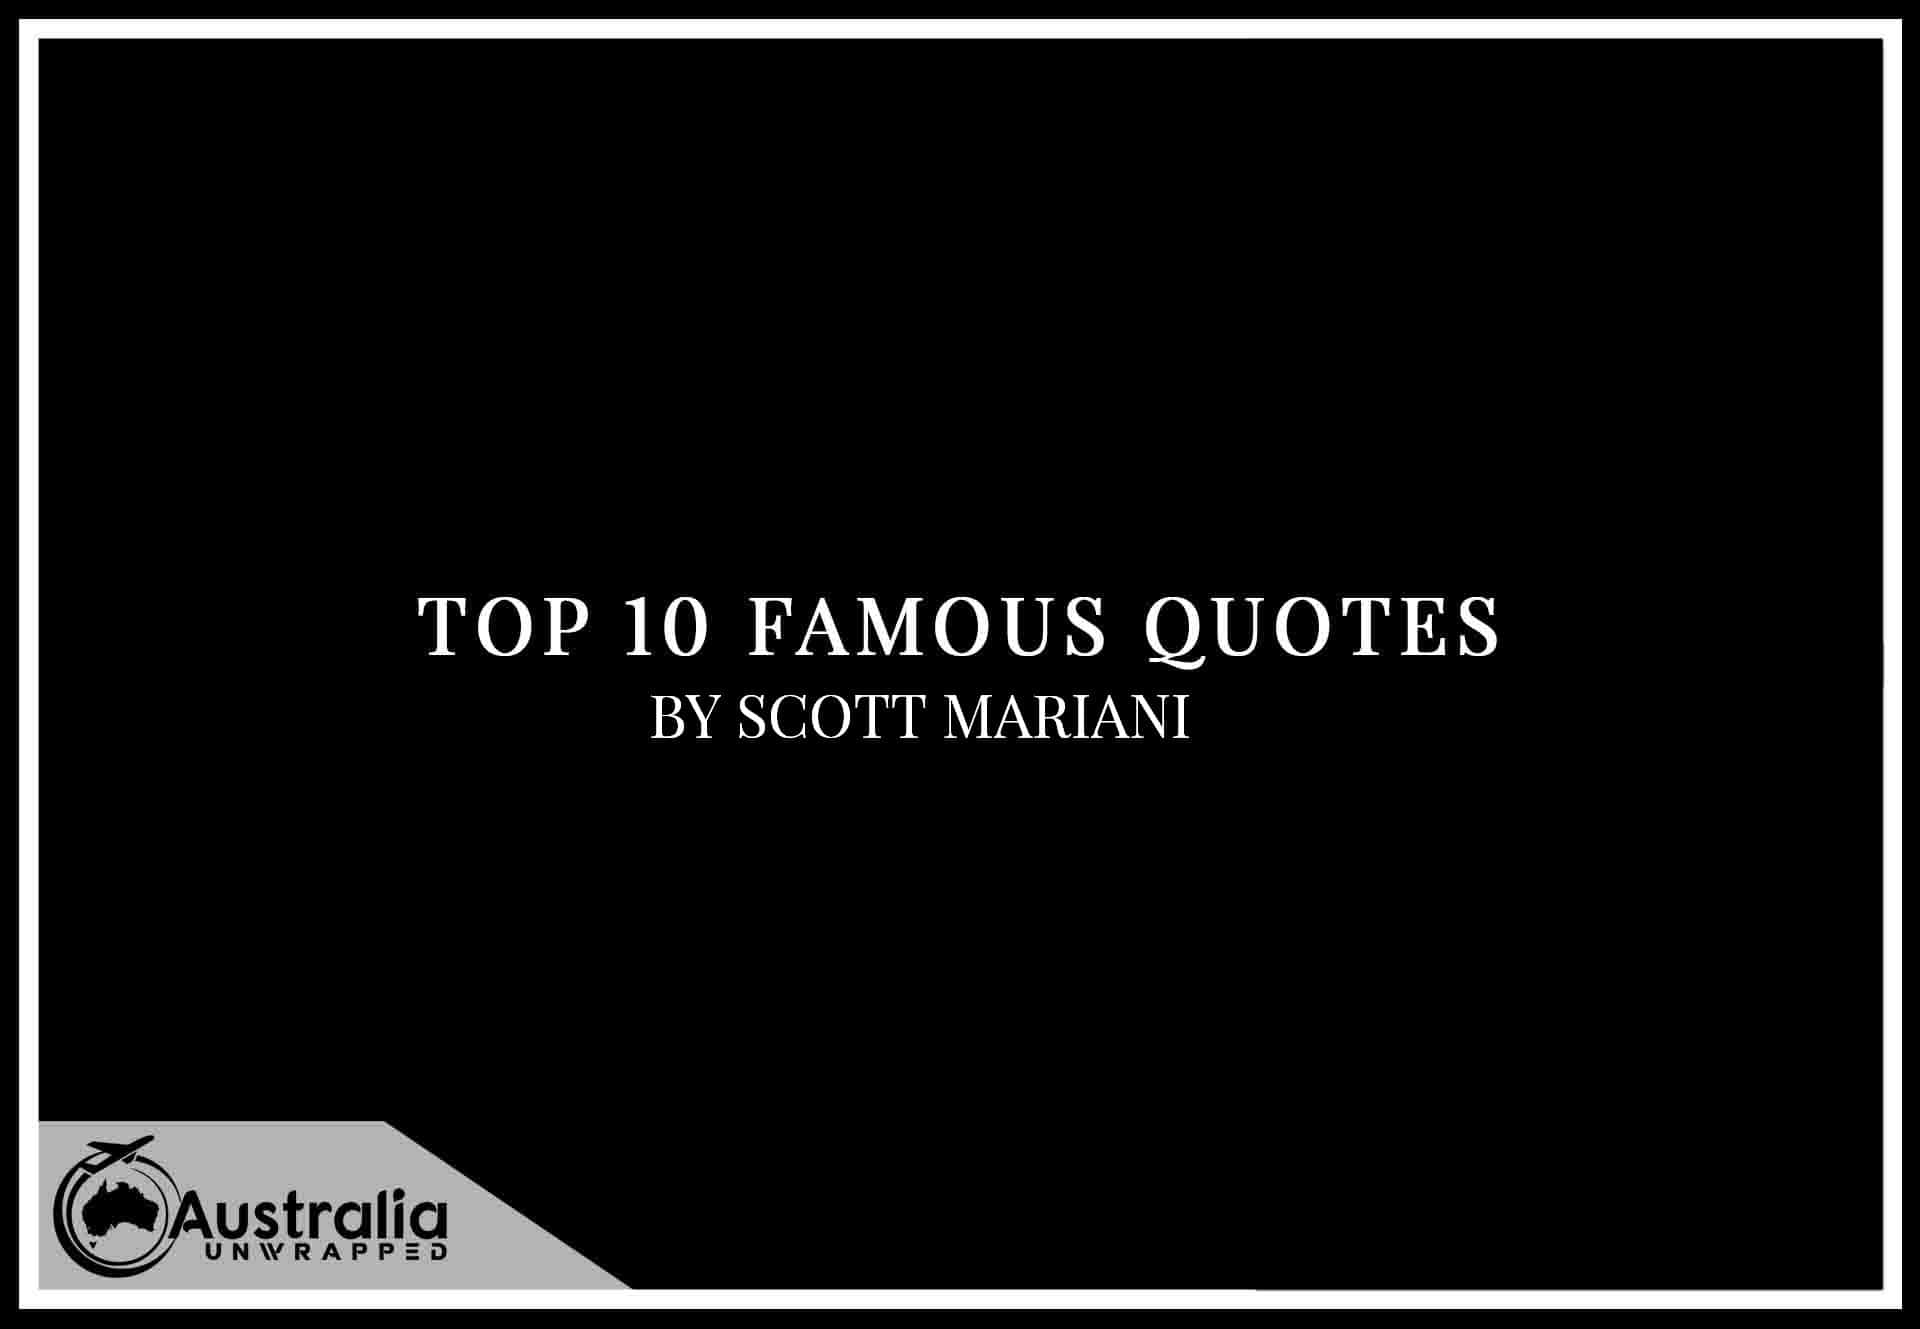 Top 10 Famous Quotes by Author Scott Mariani